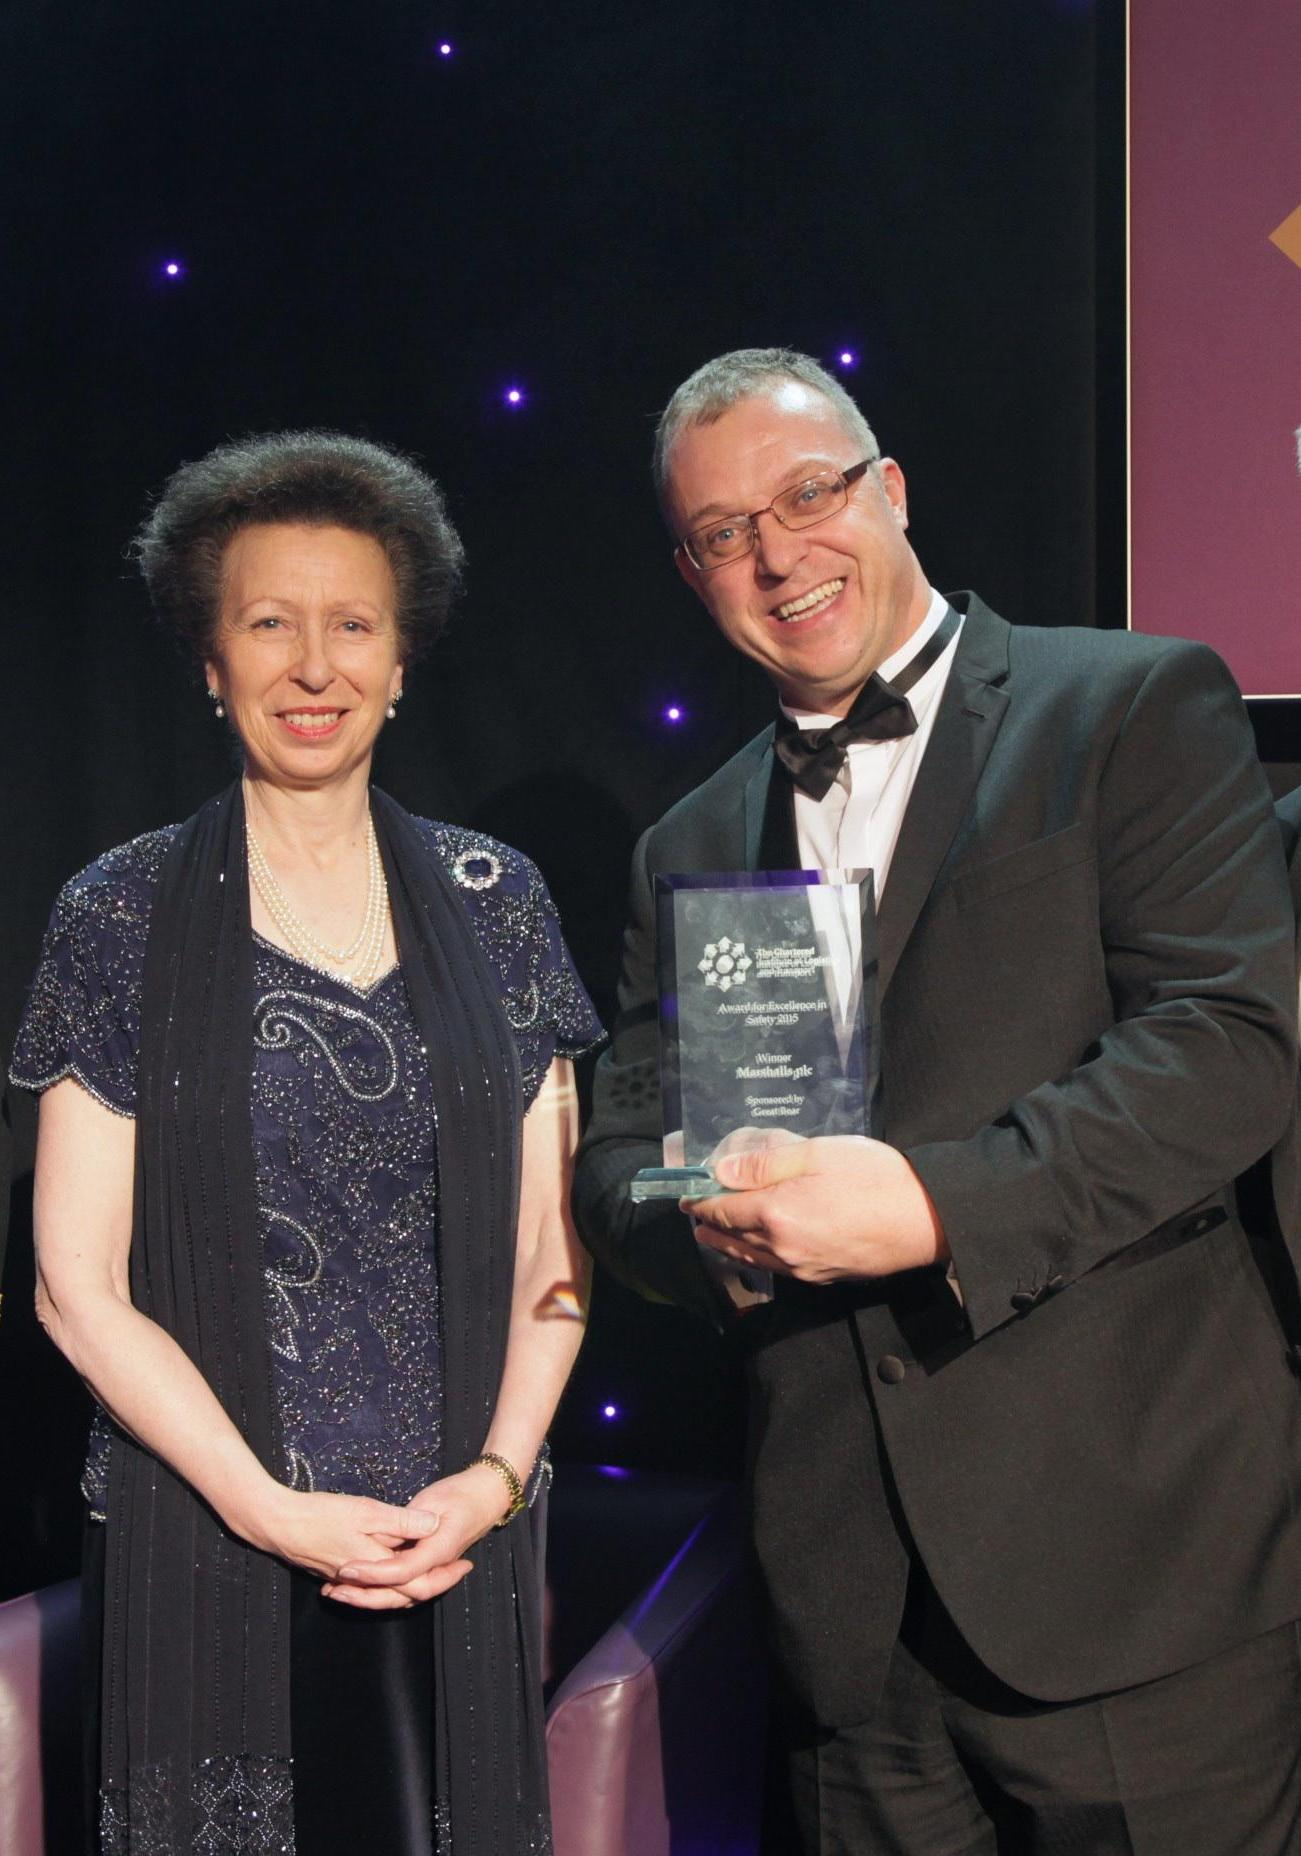 Guy Ripley accepting the award from Her Royal Highness Princess Anne